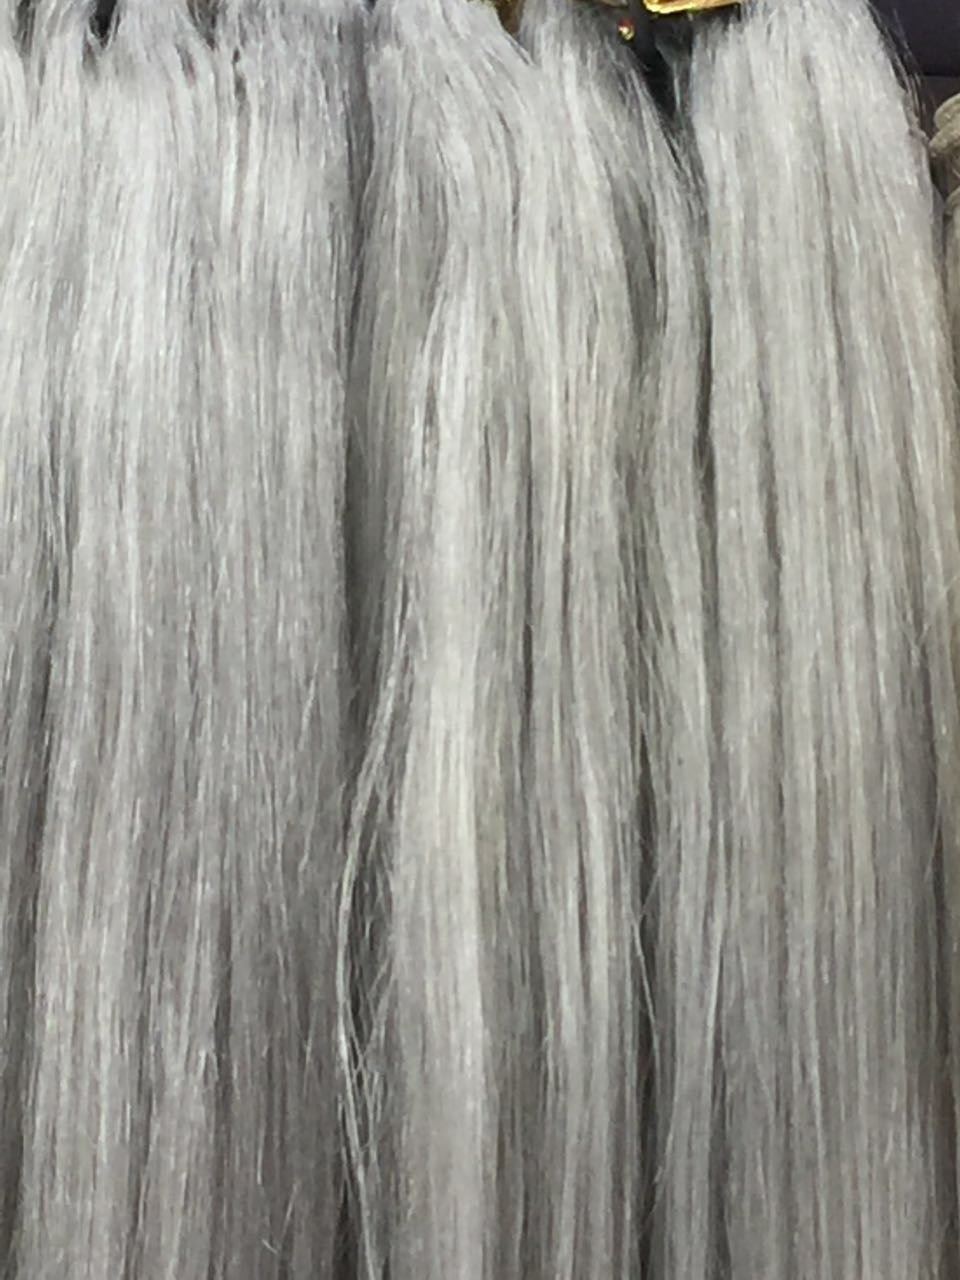 Gray Hair Extension Silky Straight Hair Weft 26inch 100grampcsgray